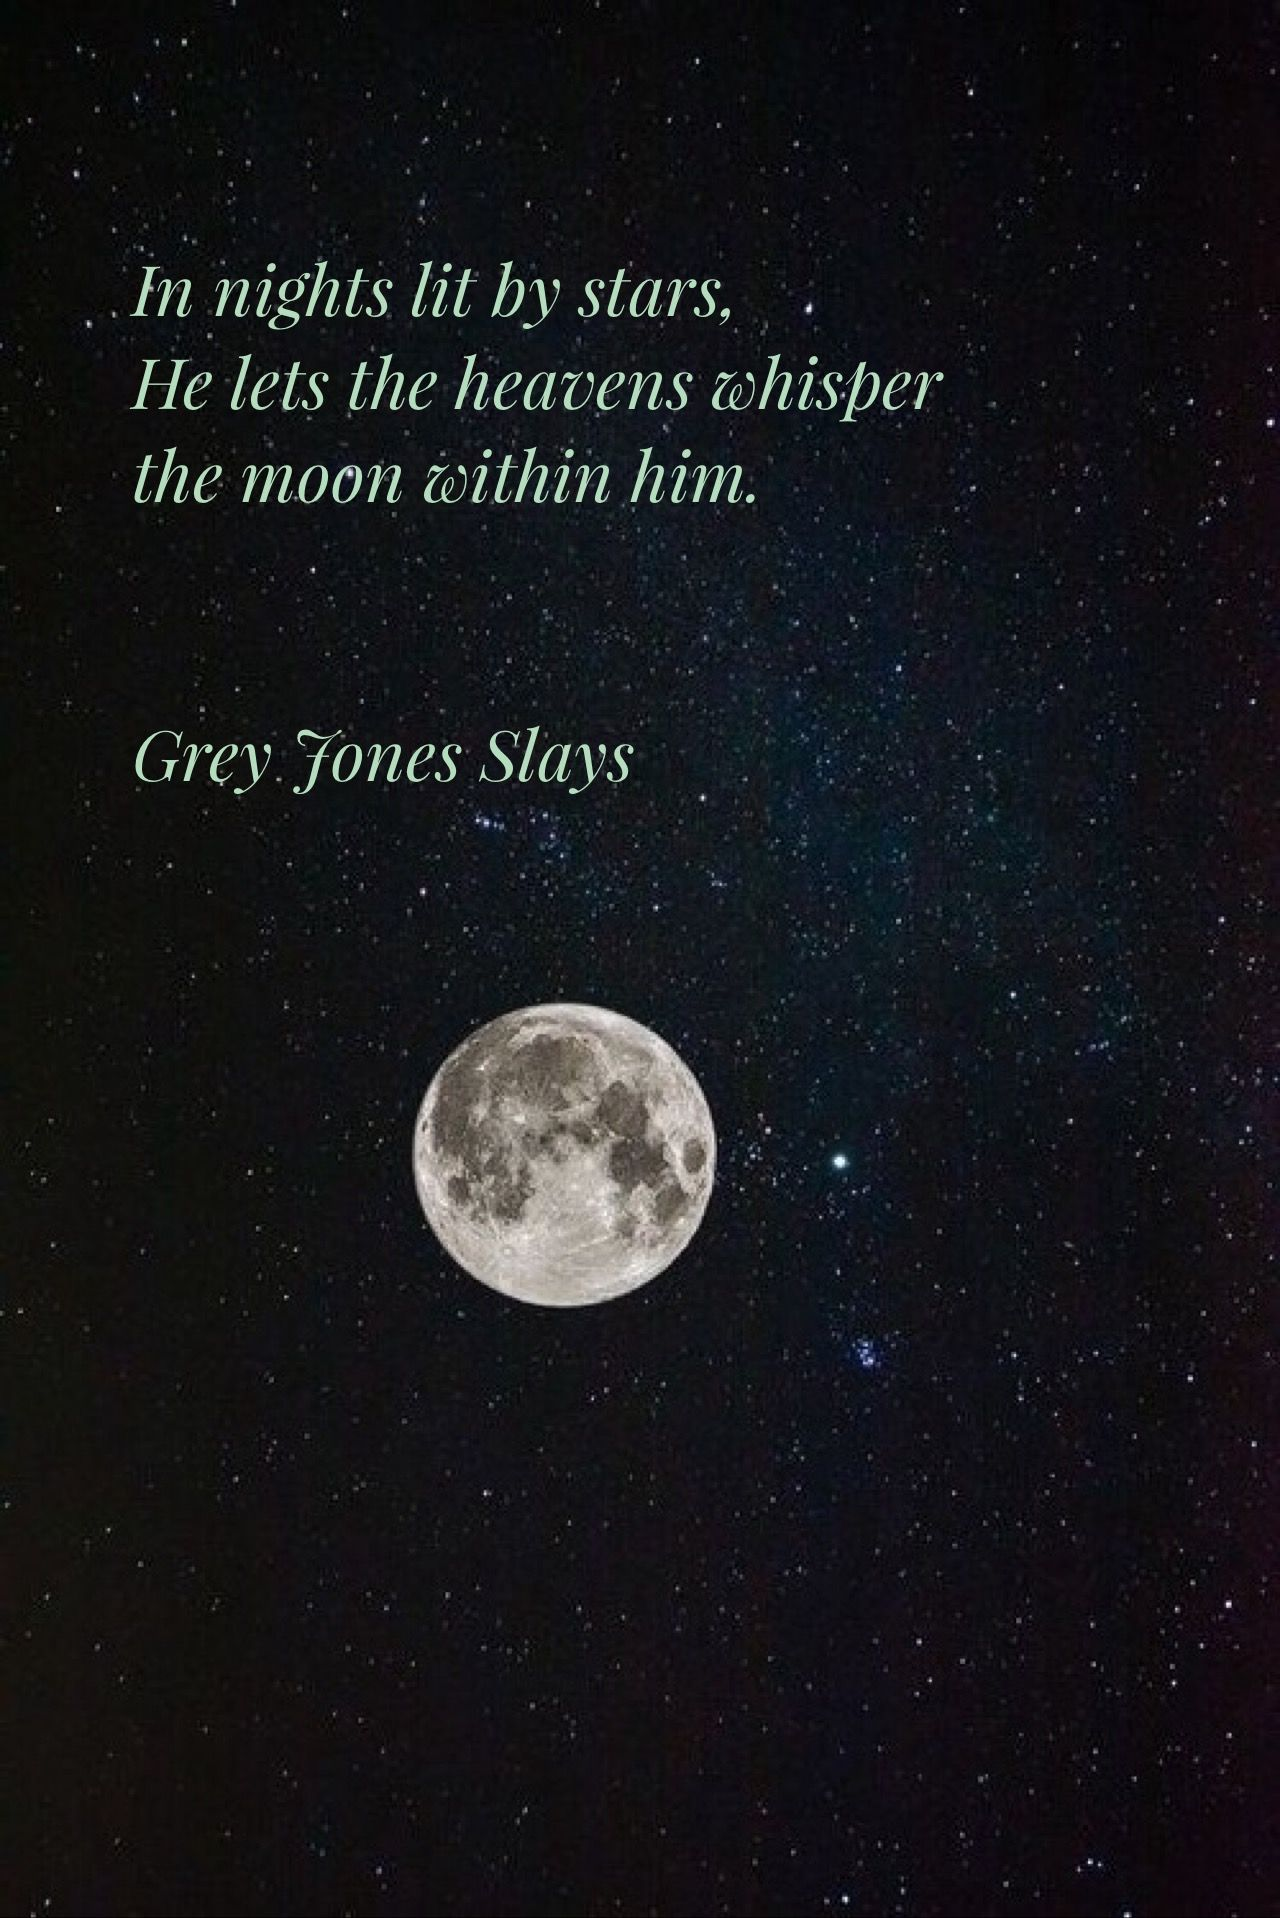 #Haiku #Poetry grayjoneslays.wordpress.com